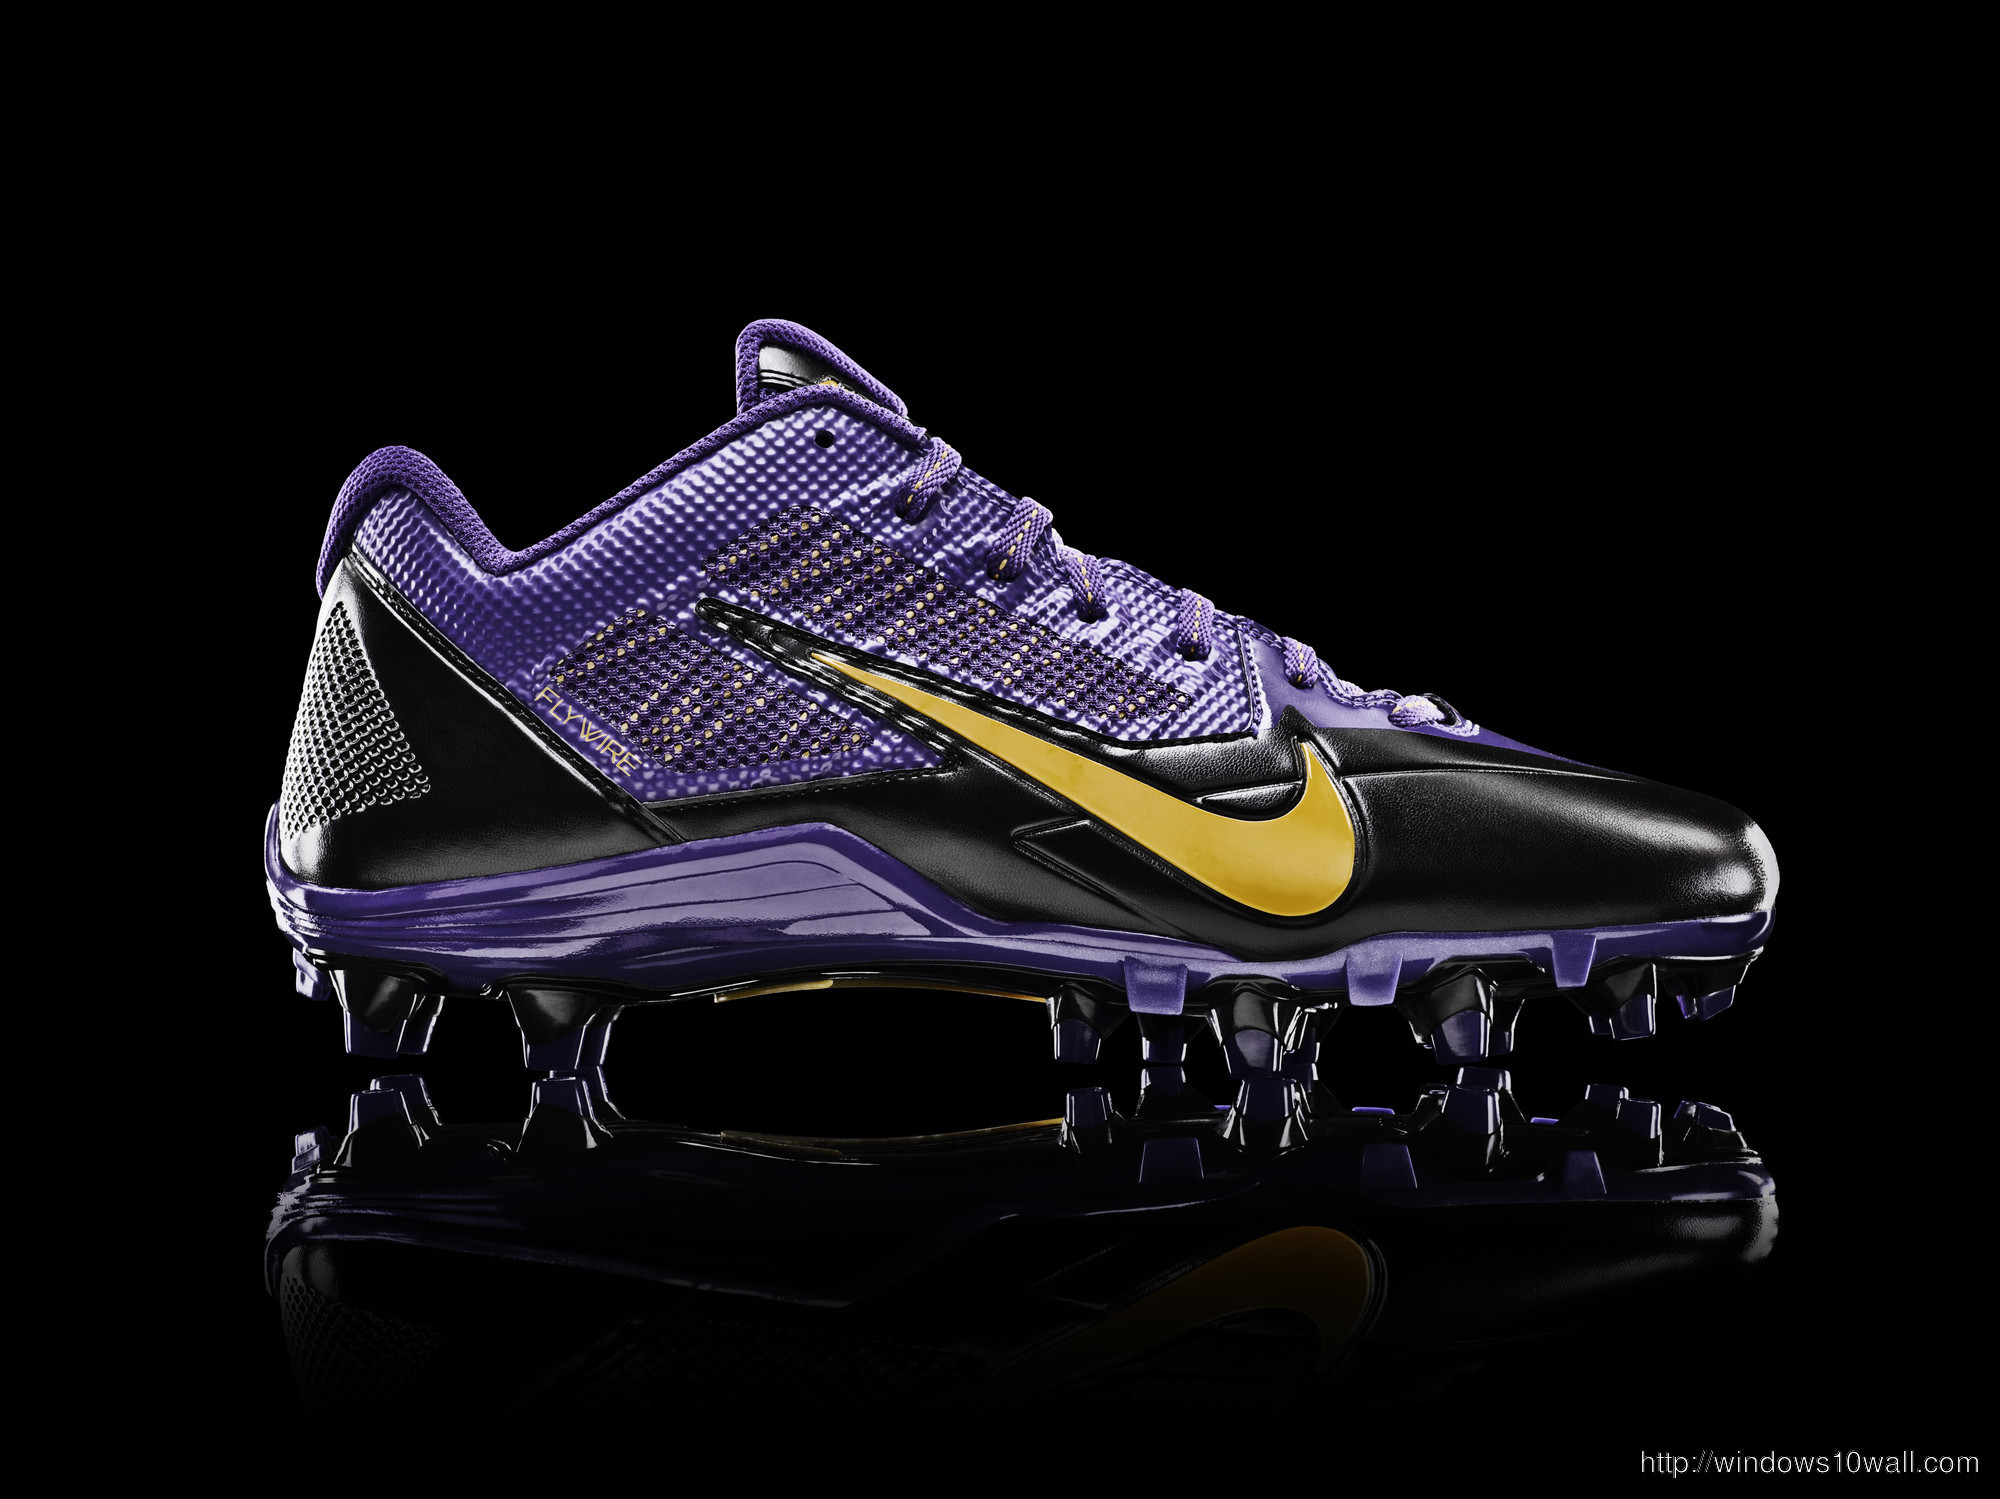 adrian-peterson-nike-shoes